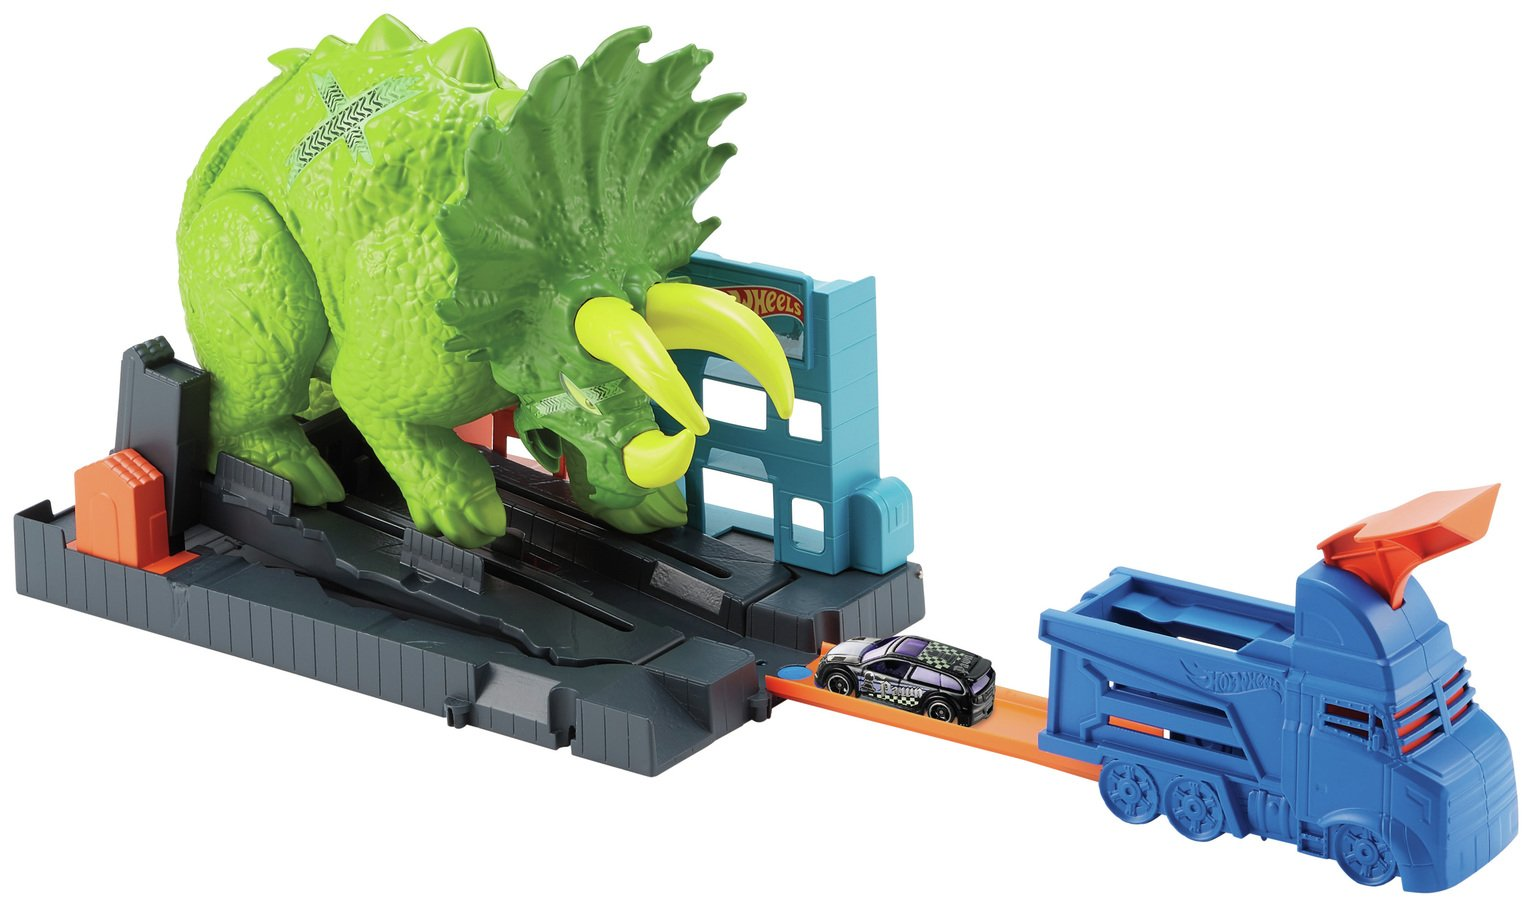 Hot Wheels Triceratops Playset with Launcher Vehicle